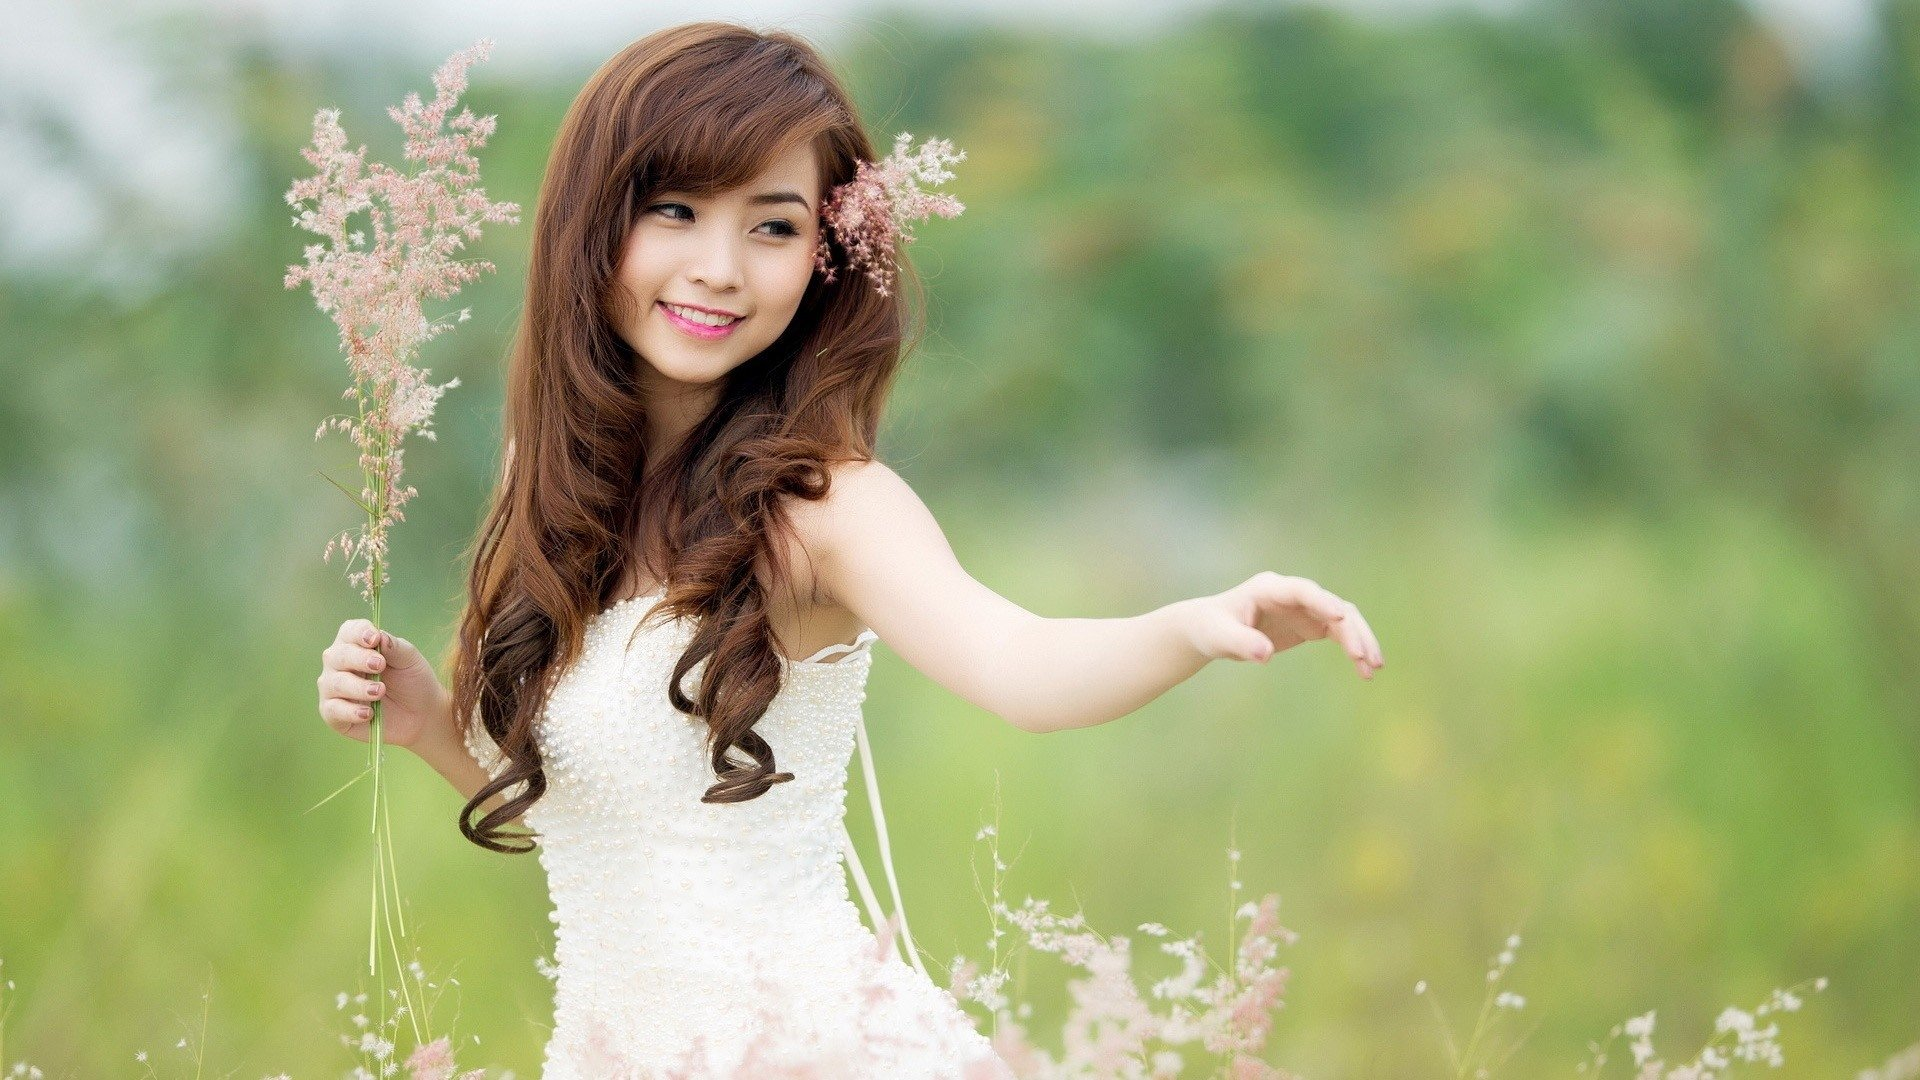 Chinese Girls Wallpapers HD Pictures One HD Wallpaper 1920x1080